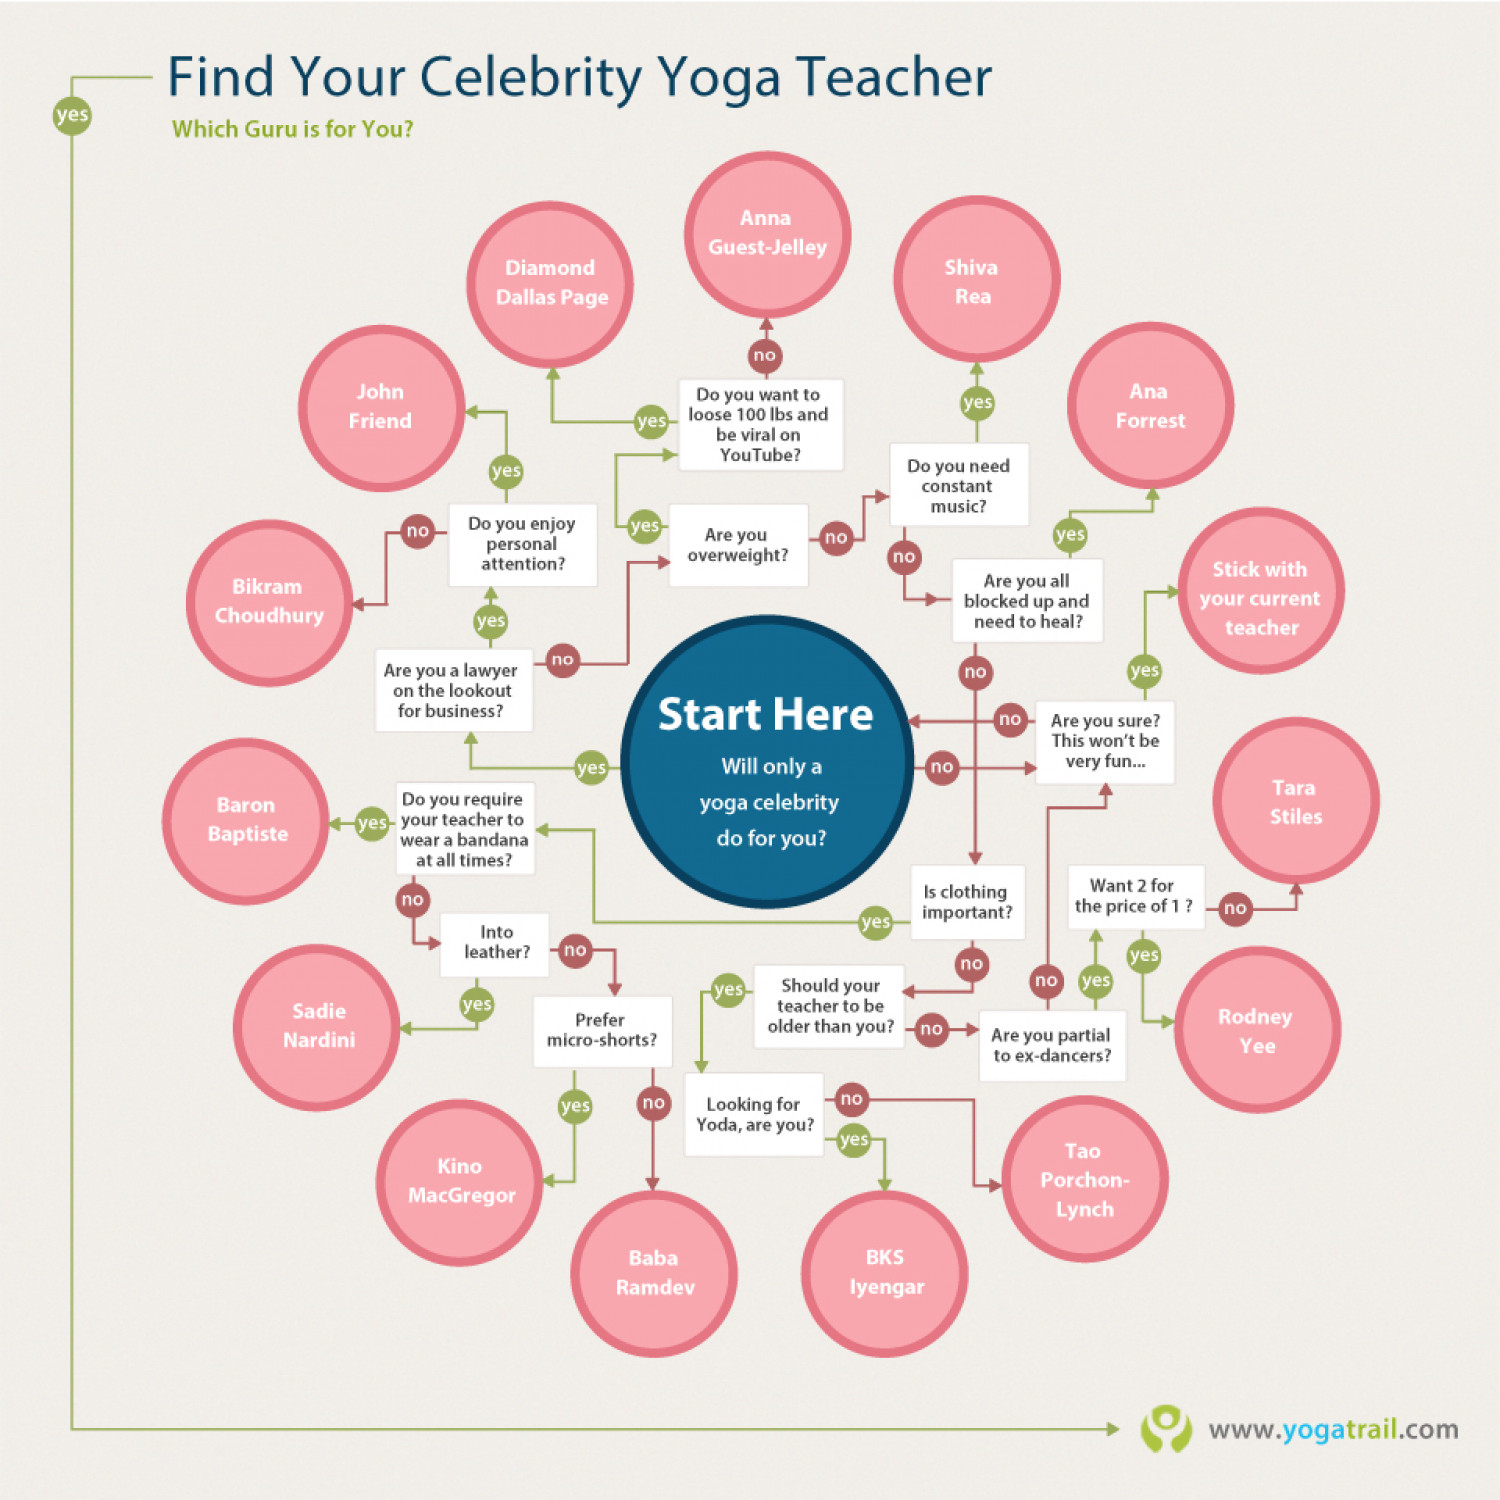 Find Your Celebrity Yoga Teacher Infographic